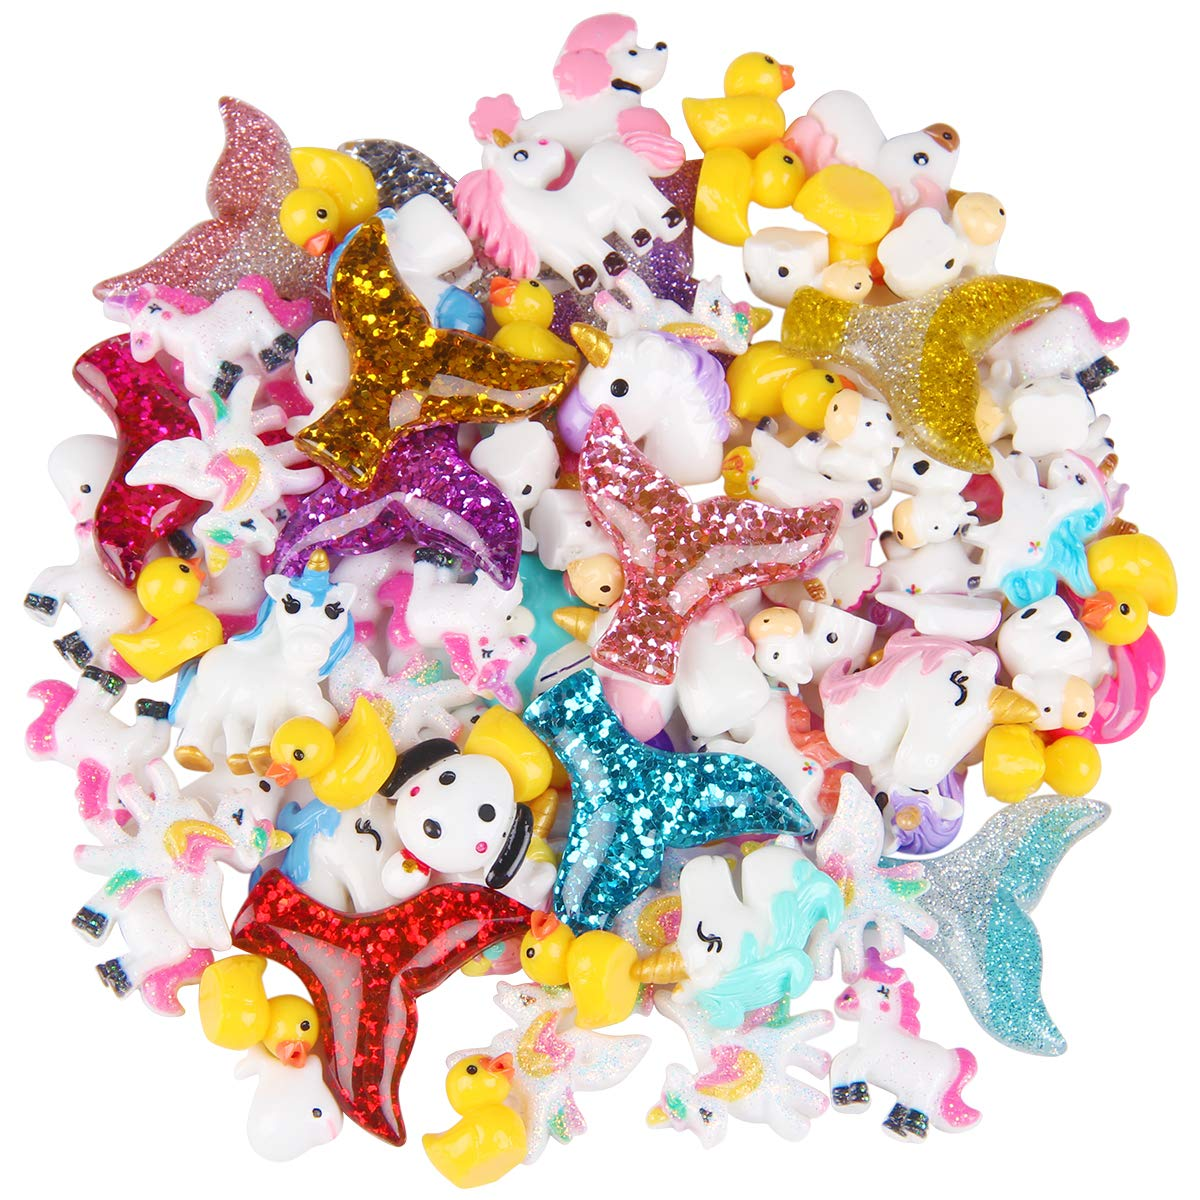 Youth Union 103Pcs Slime Charms with Mermaid Tail Unicorn Resin Flatback Ducks of Slime Beads Mixed for Ornament Scrapbooking DIY Crafts 4336984069